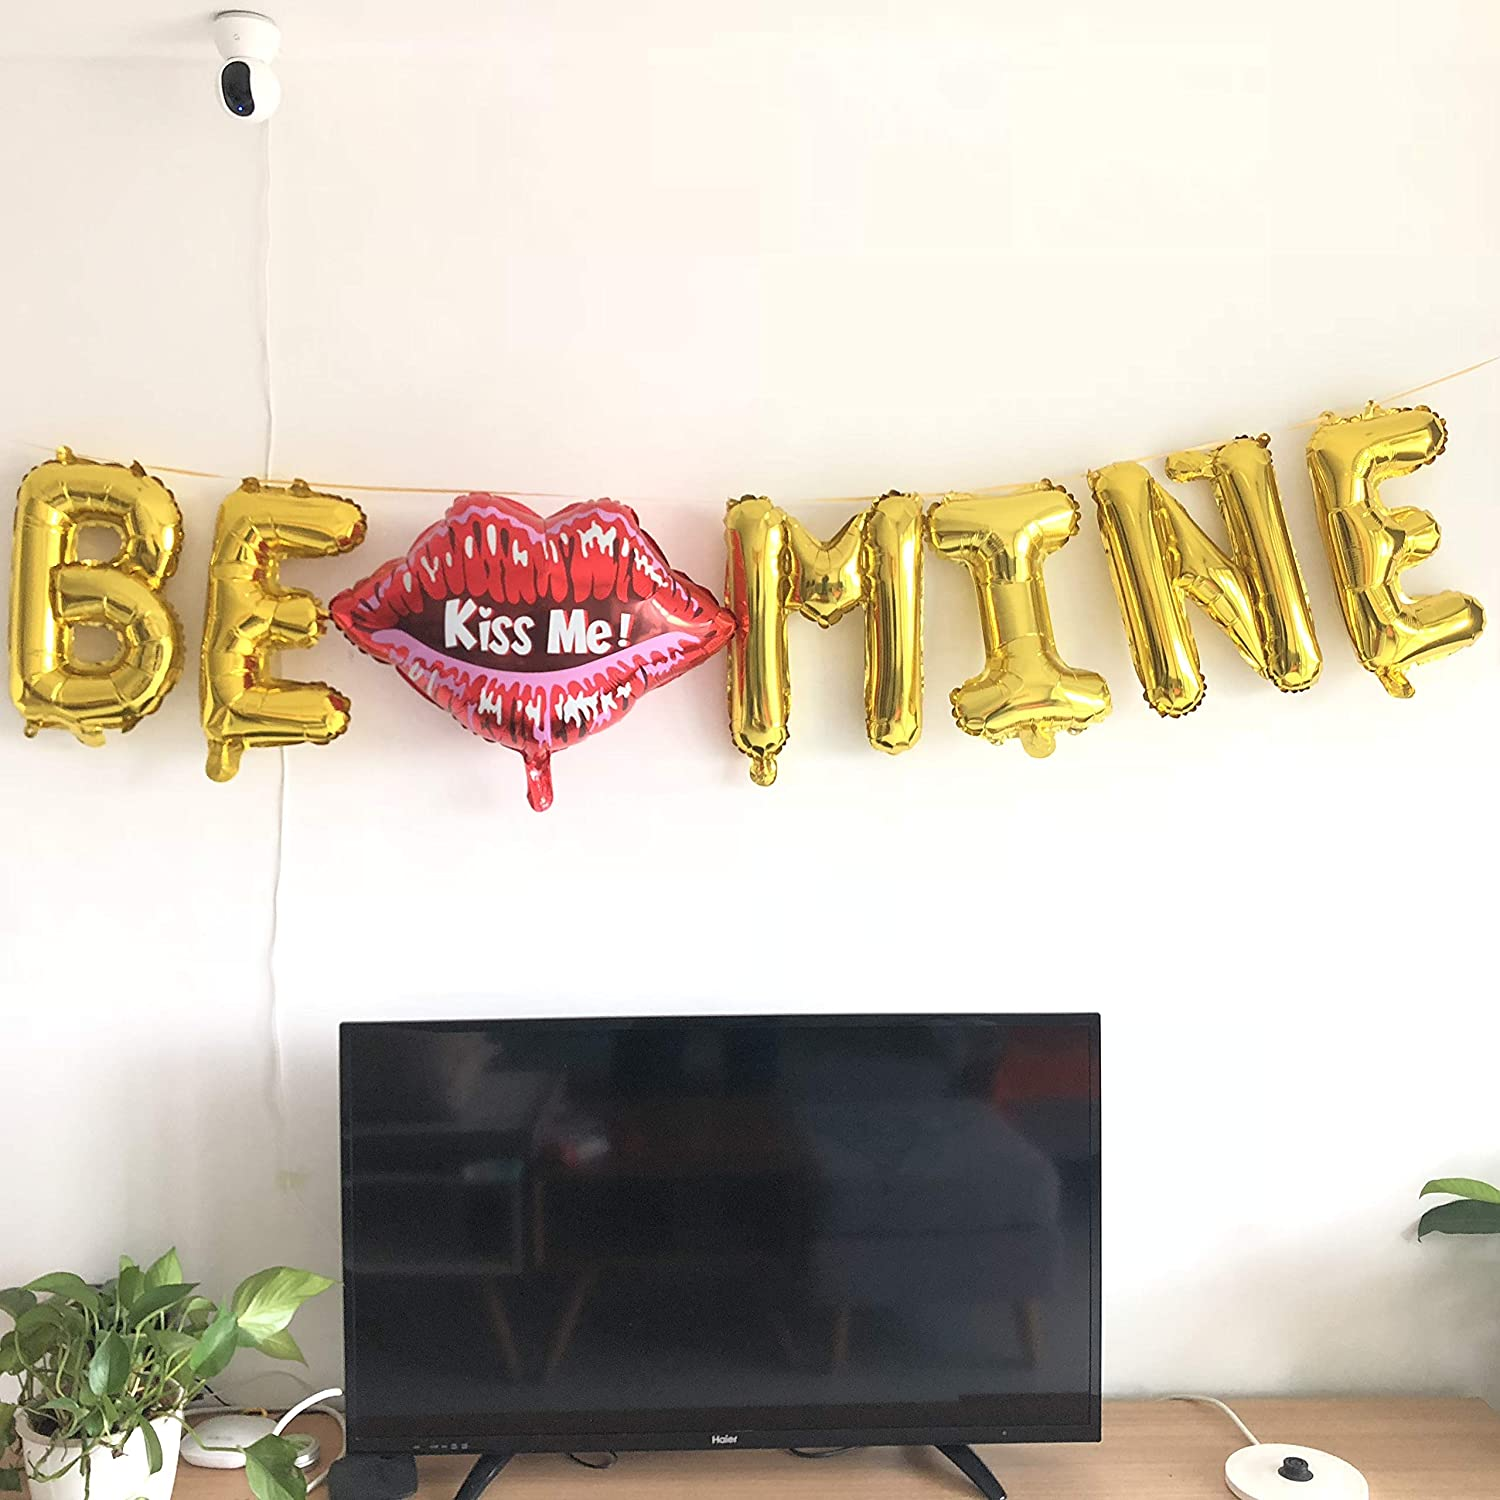 BE Mine Balloon, BE Mine Valentine Banner Decoration Kiss Me Lip Balloon for Galentines Day Wedding Bridal Shower Marry Me Bachelor Bubbly Mimosa Champagne Bar Party Supplies 9PCS Kit of Qinsly